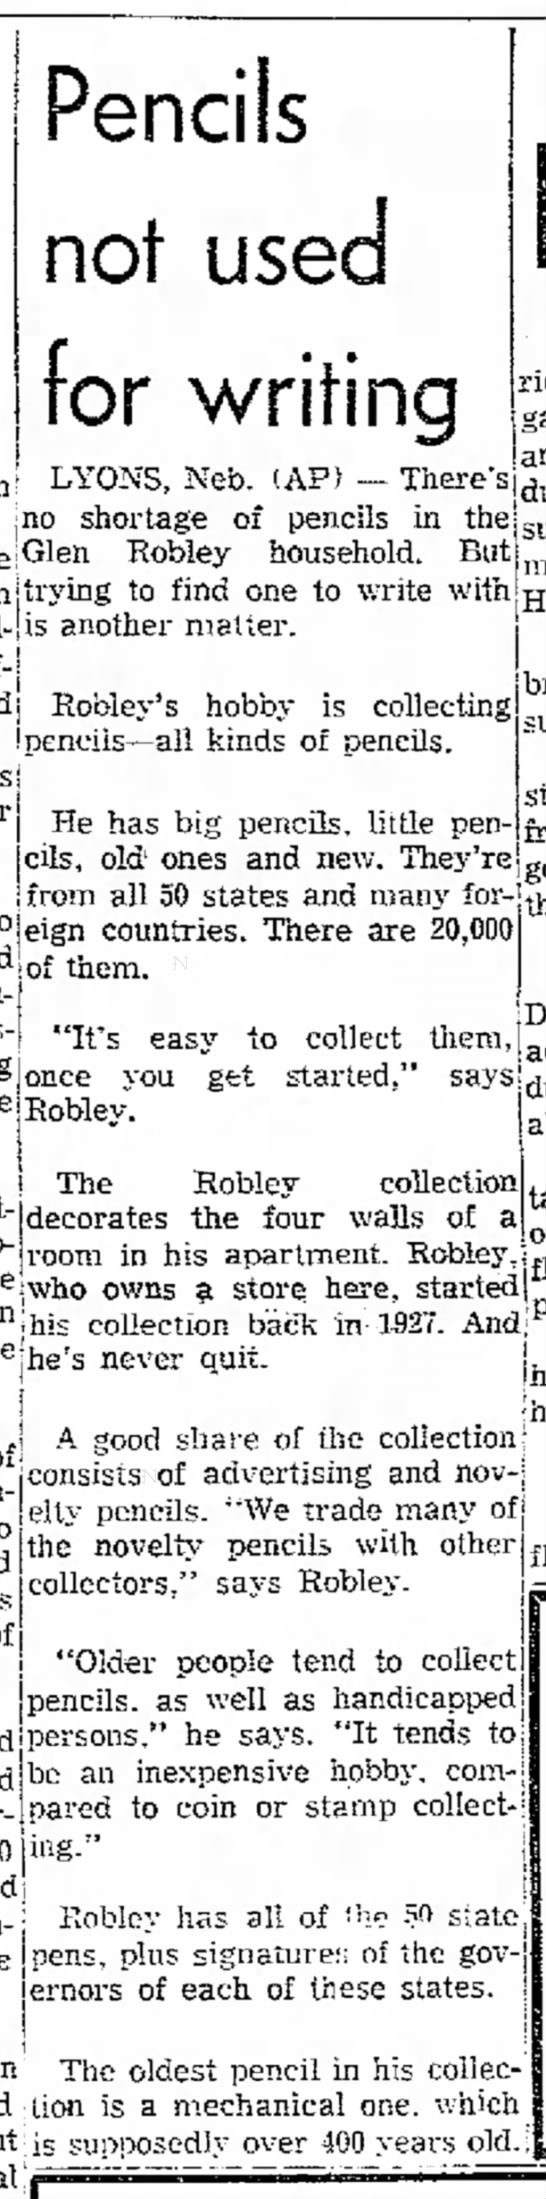 Glen Robley's Pencil collection-Daily Capital News, Jeff City, Missouri-21 Dec, 1967-page 19 - Pencils not used for writing LYONS, Neb. (AP)...